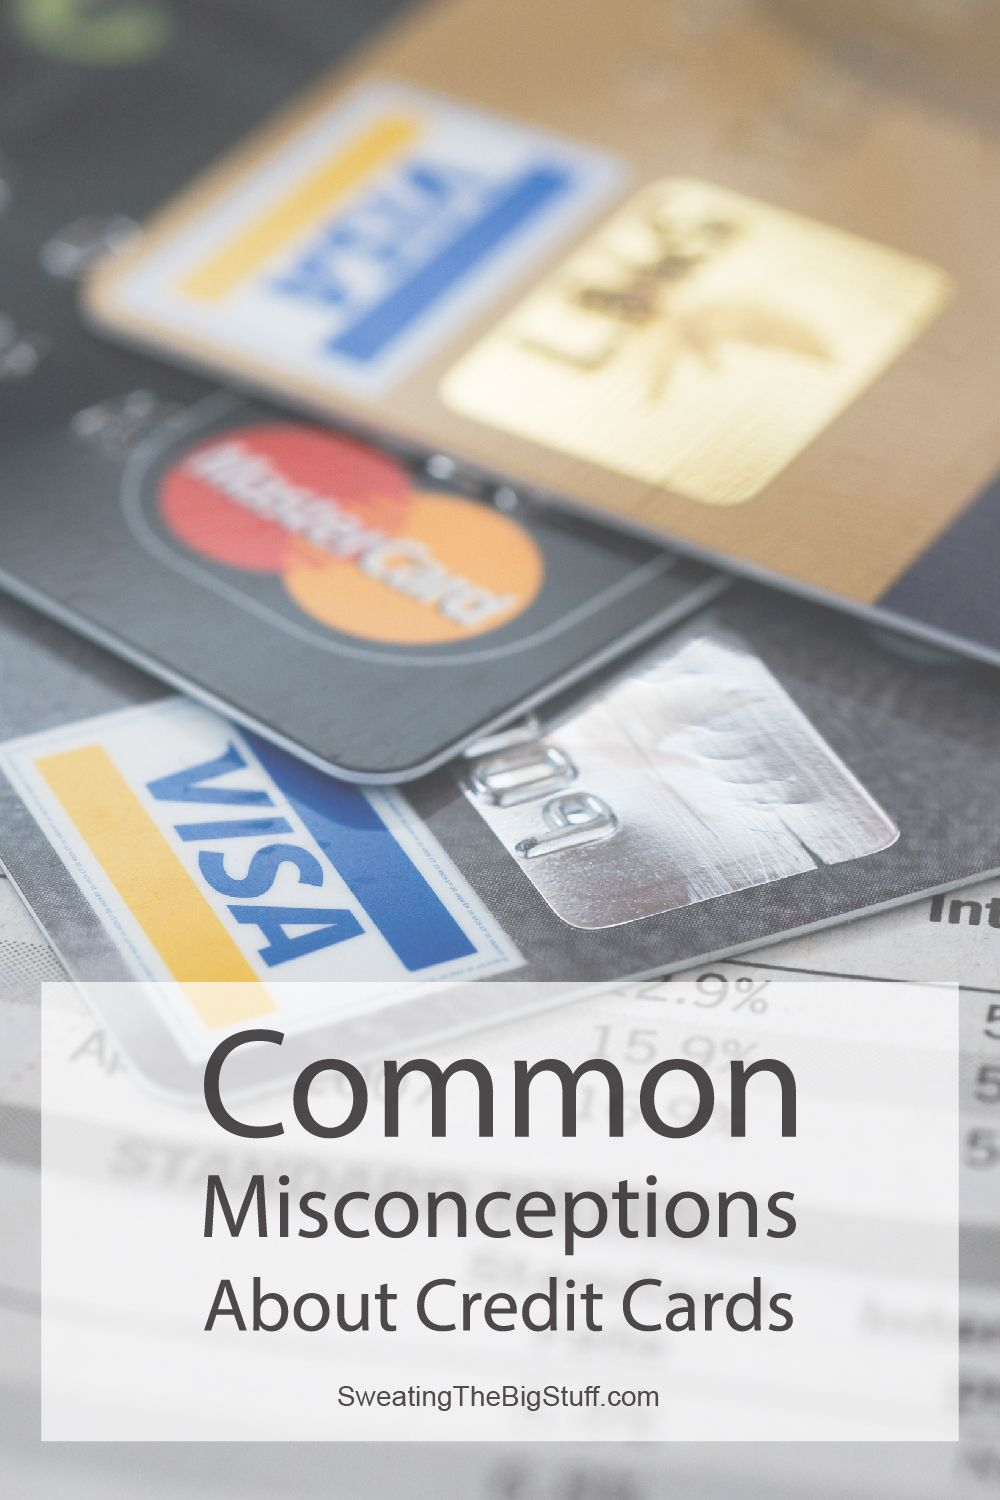 Common Misconceptions About Credit Cards